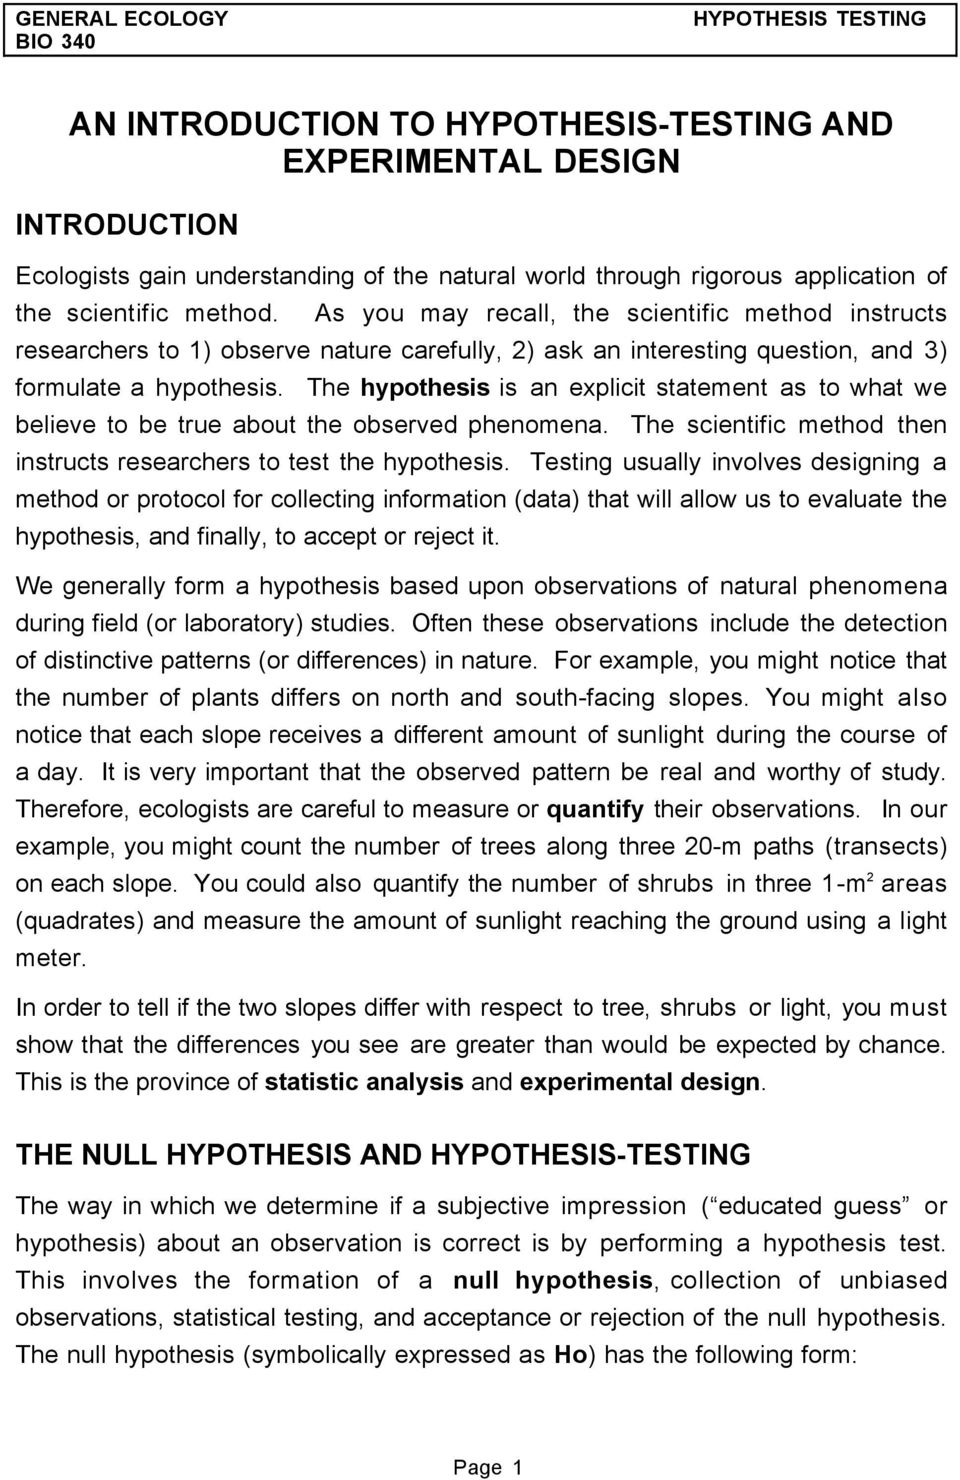 The hypothesis is an explicit statement as to what we believe to be true about the observed phenomena. The scientific method then instructs researchers to test the hypothesis.